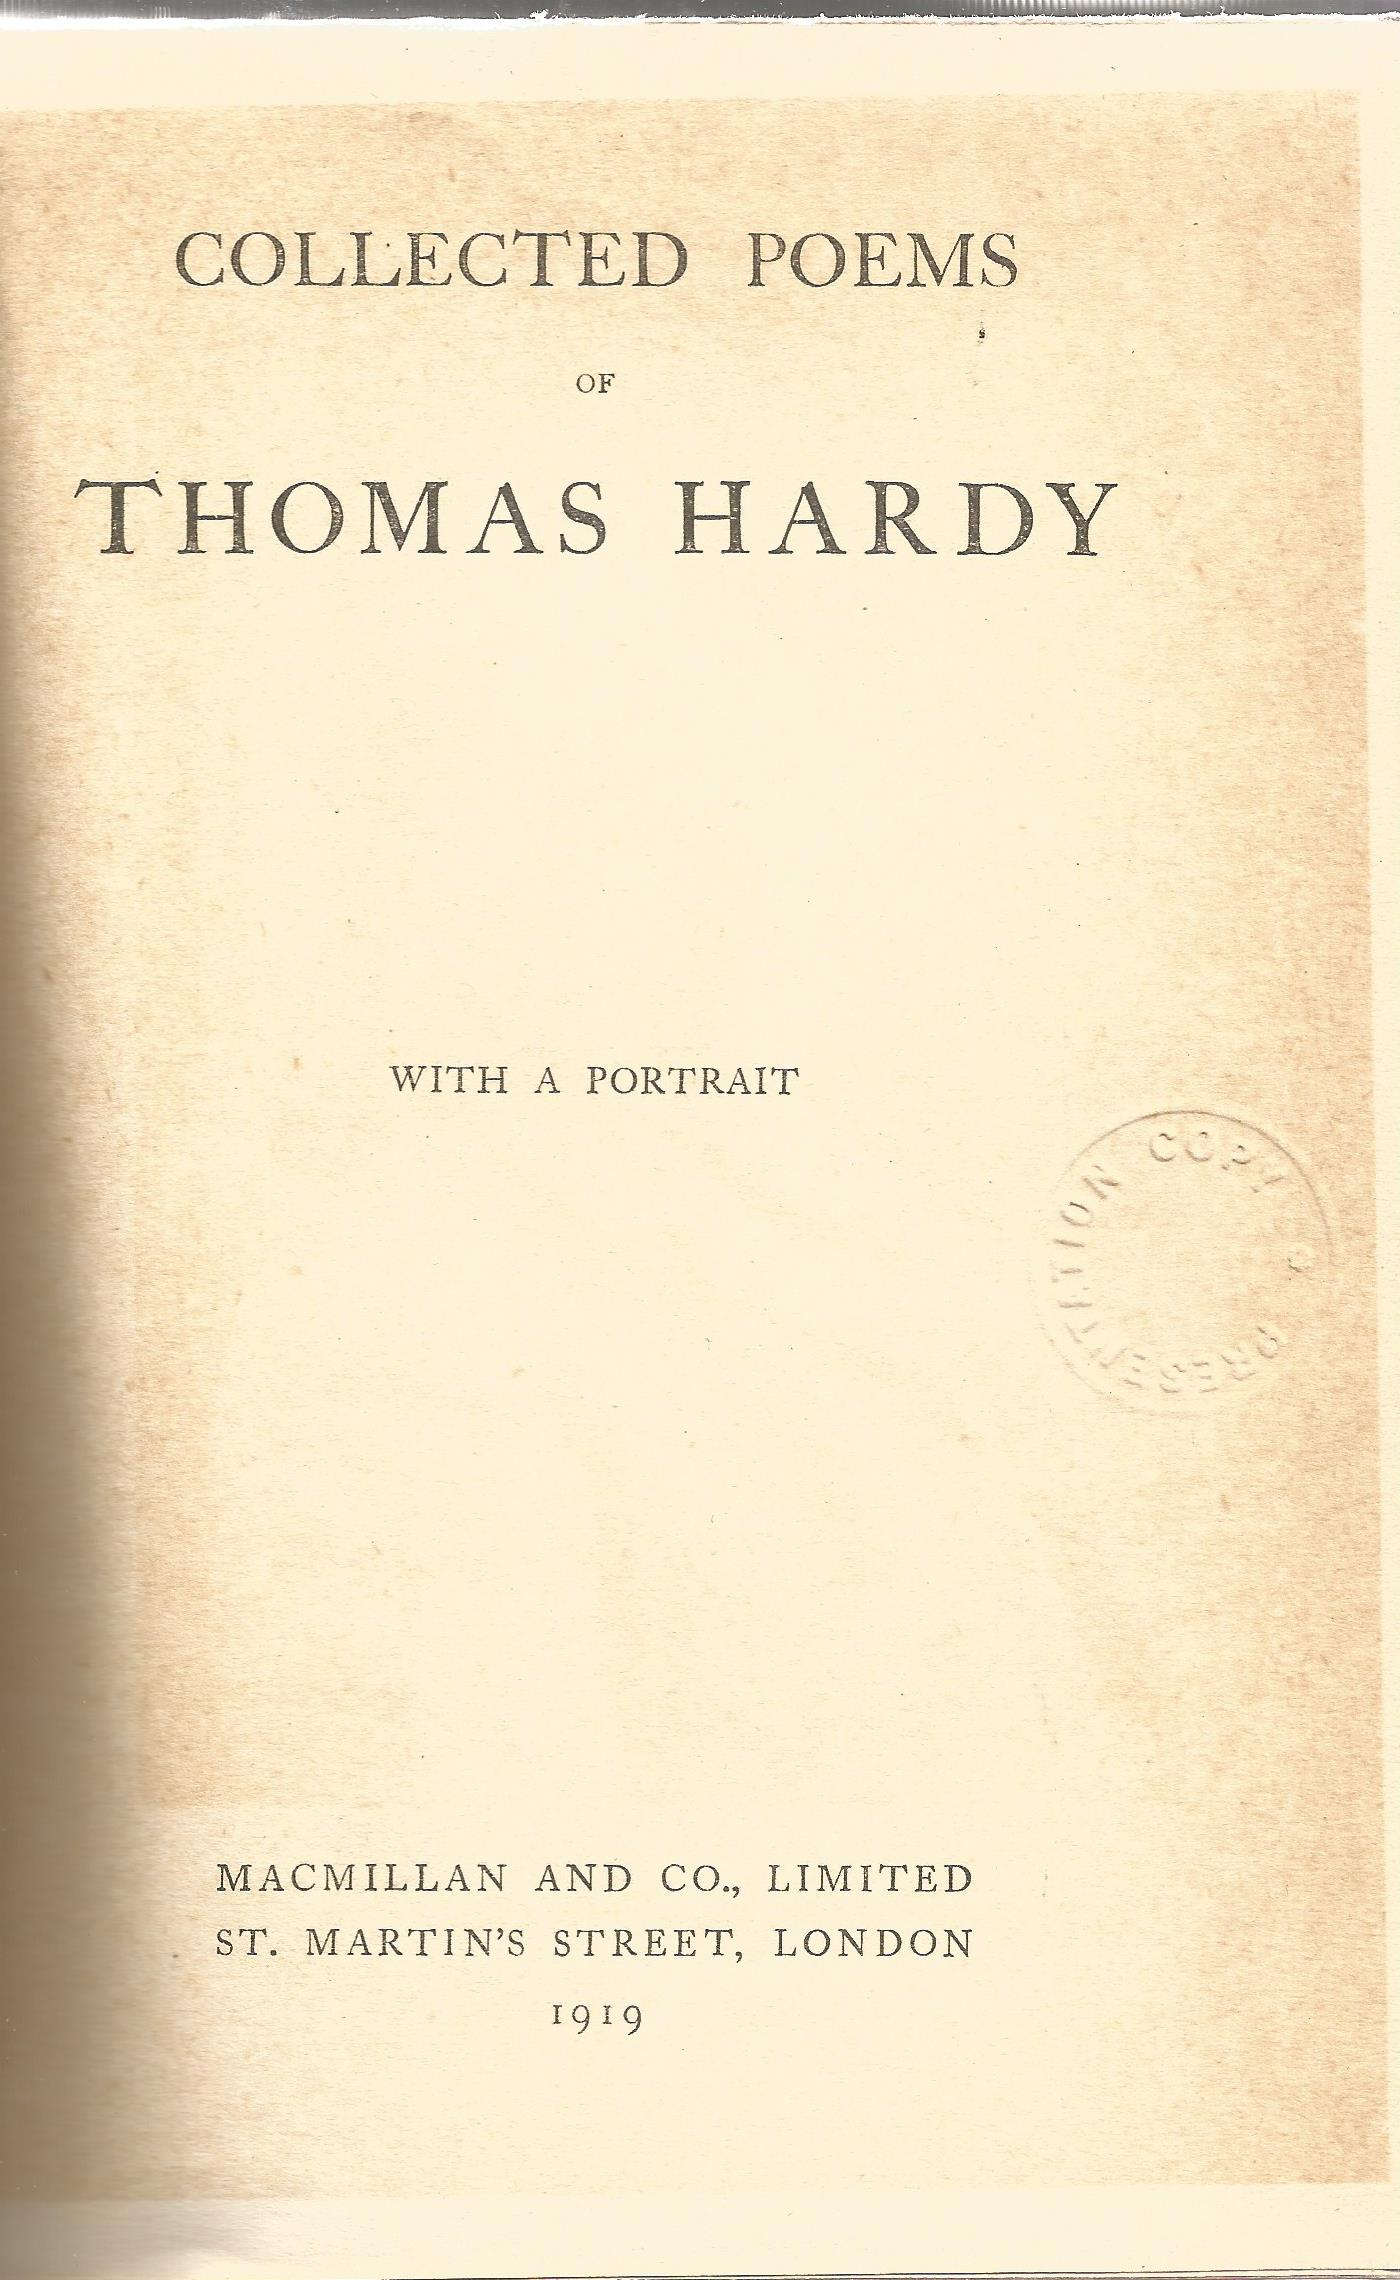 Hardback Book Collected Poems of Thomas Hardy with a Portrait 1919 First Edition published by - Image 2 of 3